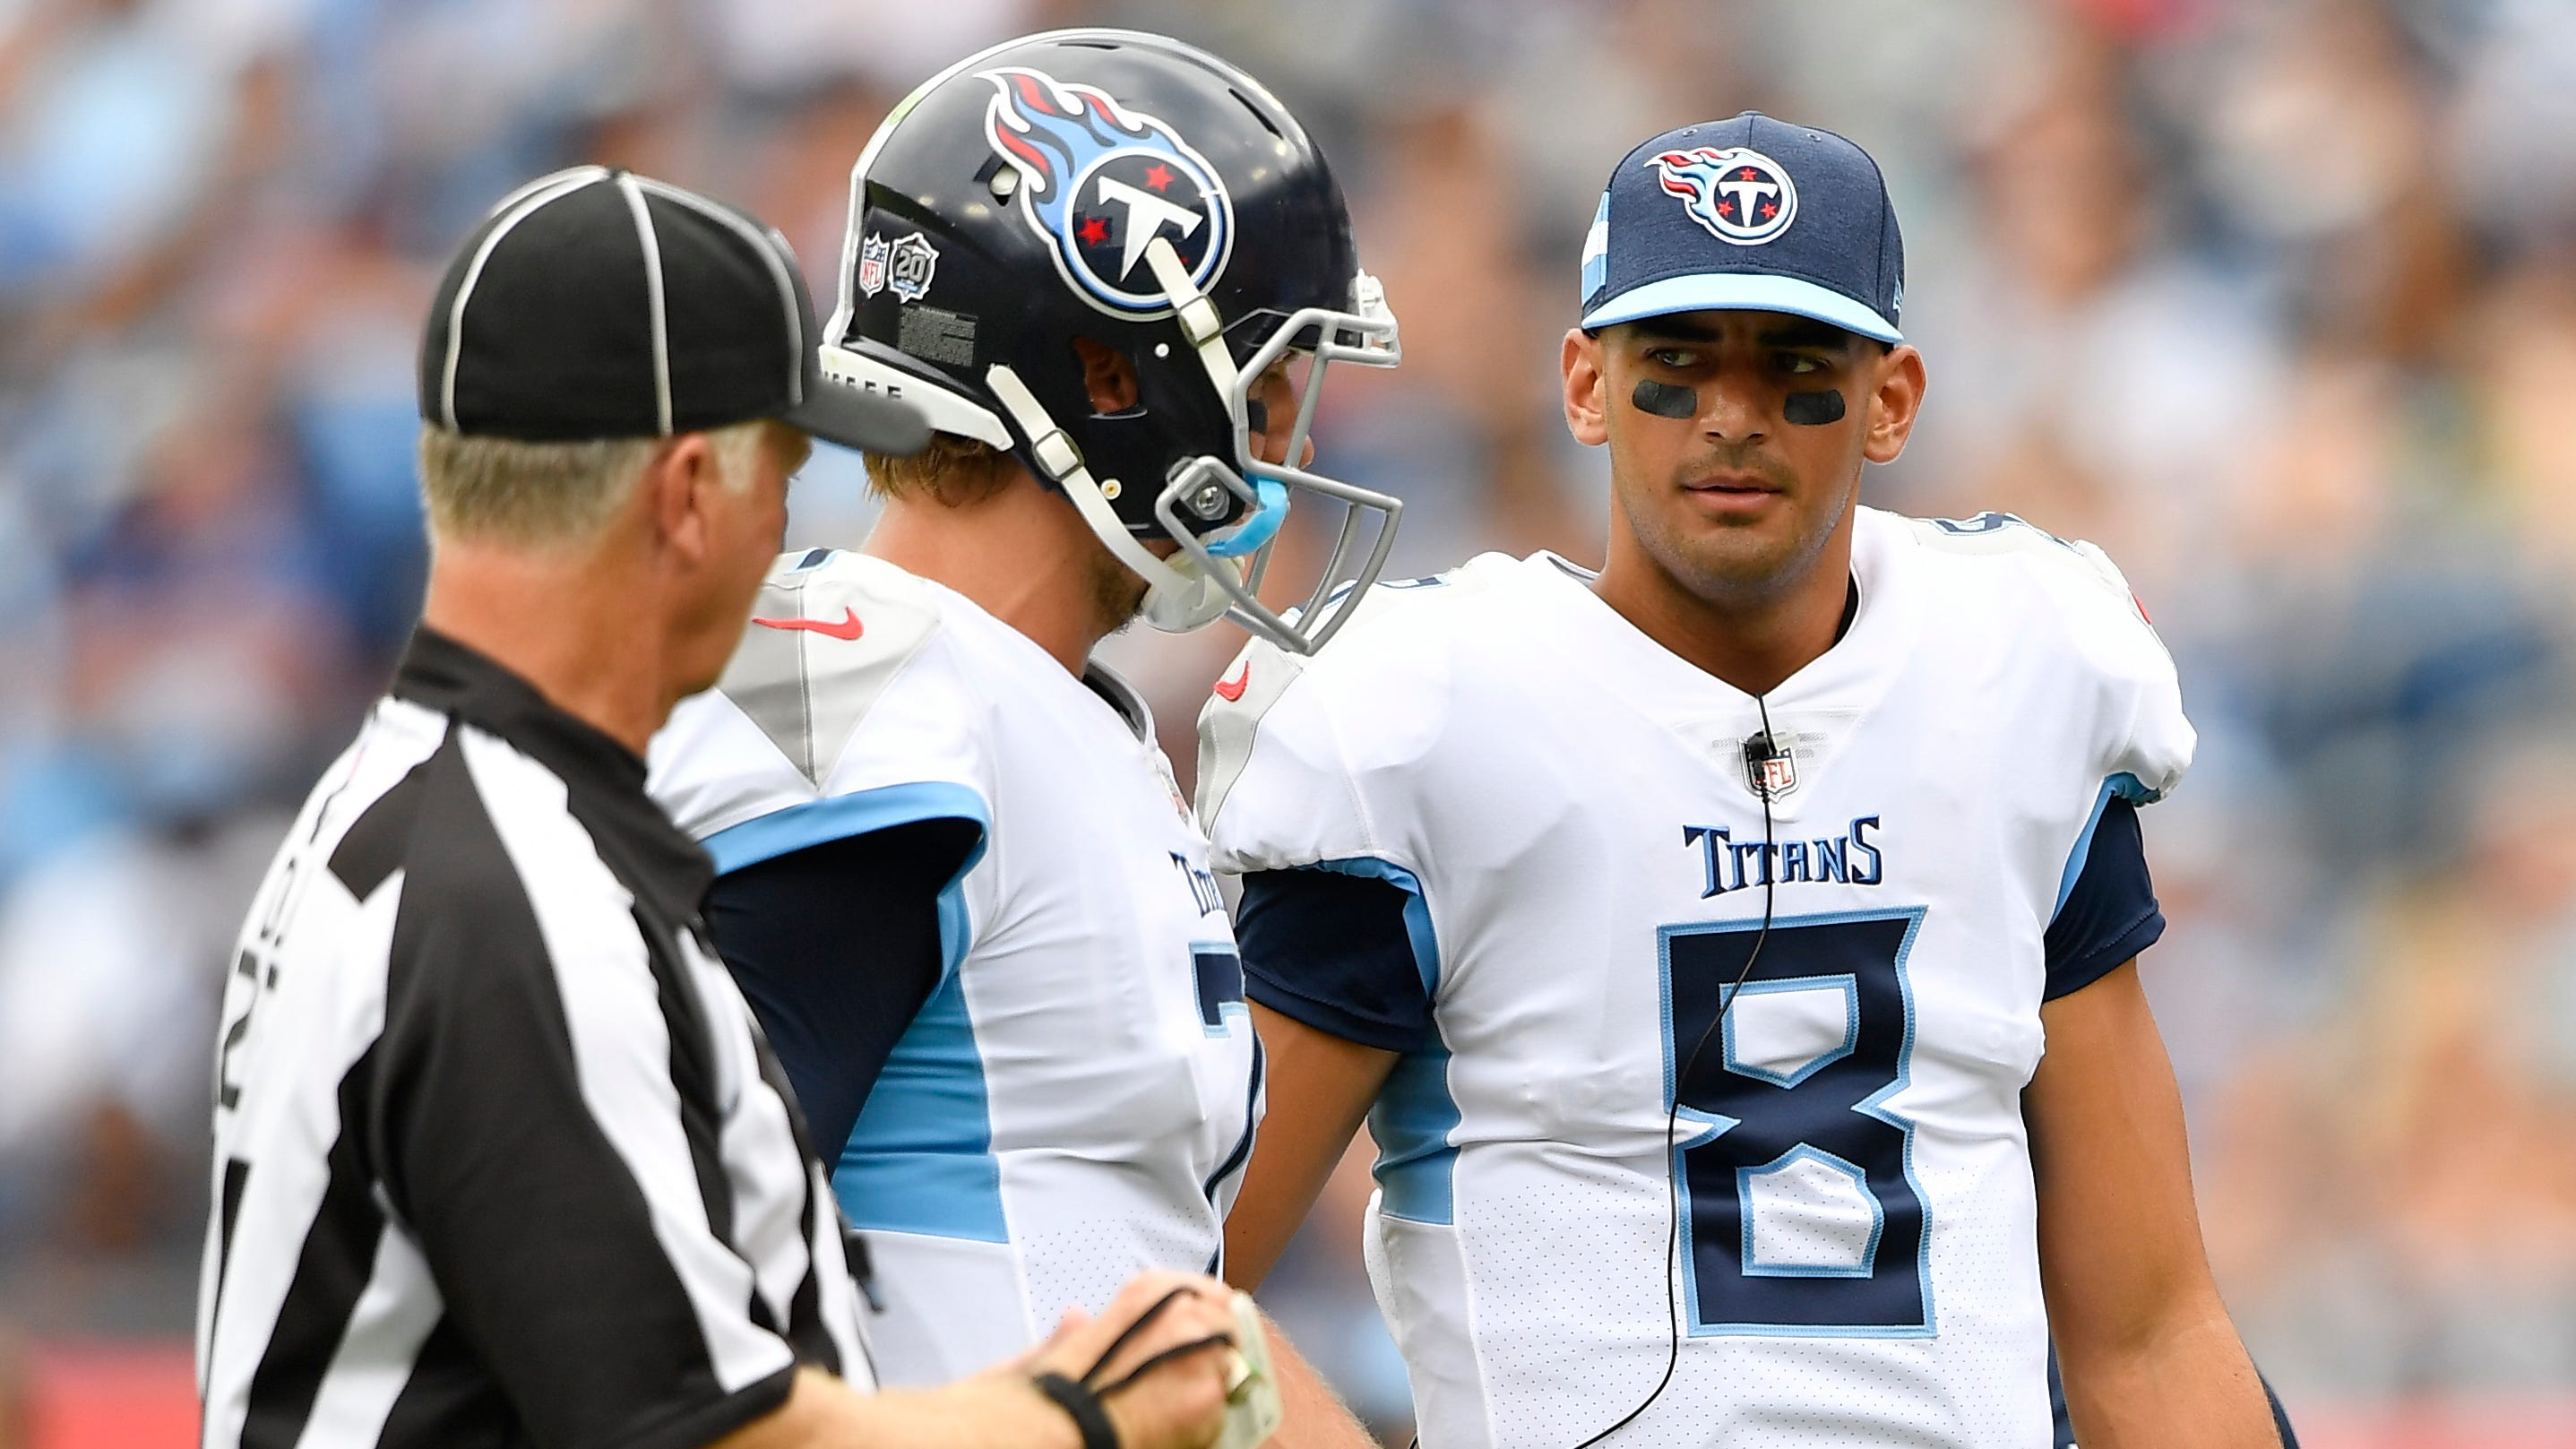 Titans got past Texans with role players, but it'll take the big boys to beat Jaguars